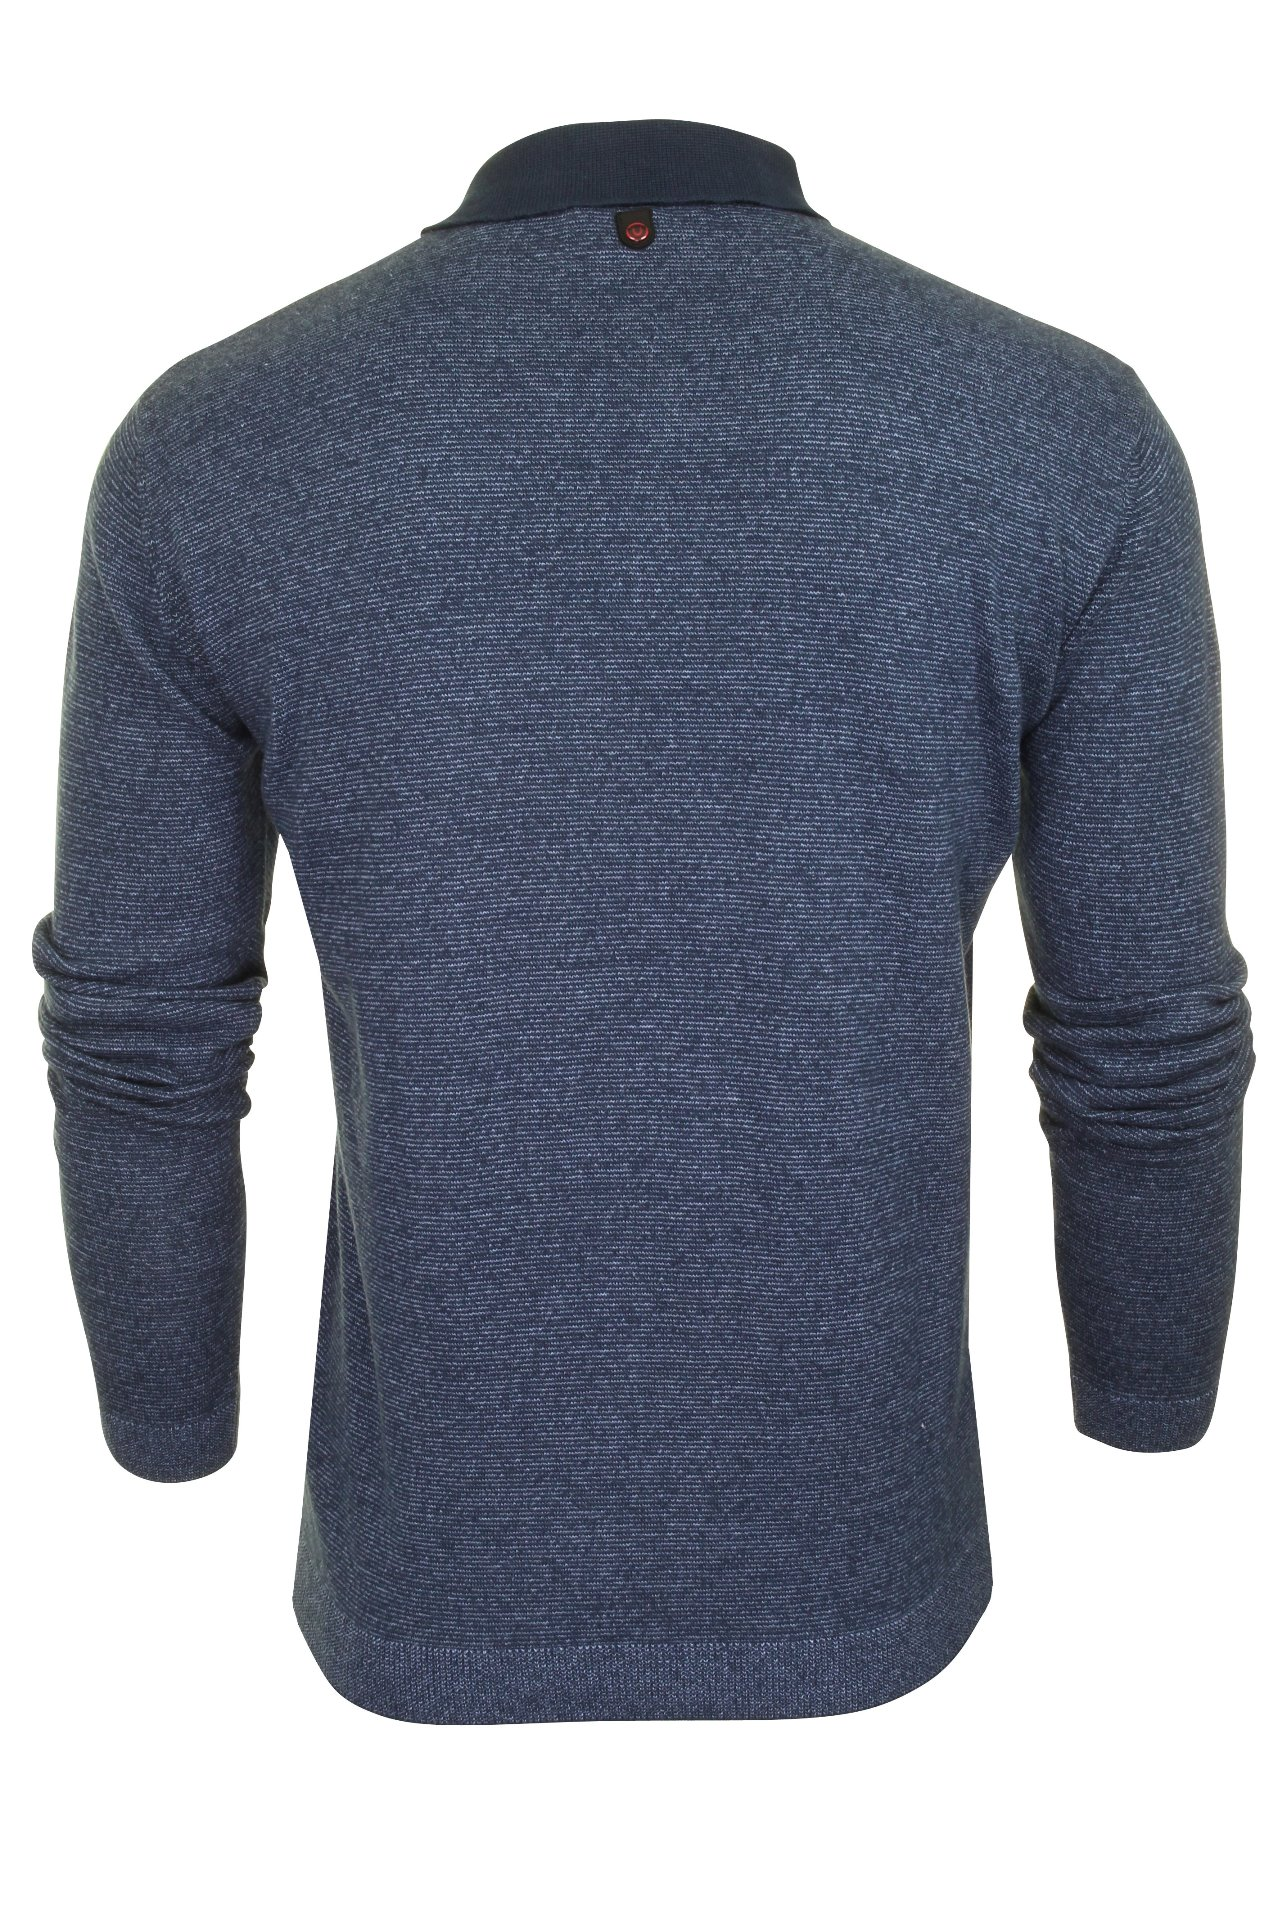 Duck-and-Cover-Mens-039-Cartwright-039-Knitted-Polo-Shirt-Long-Sleeved thumbnail 8